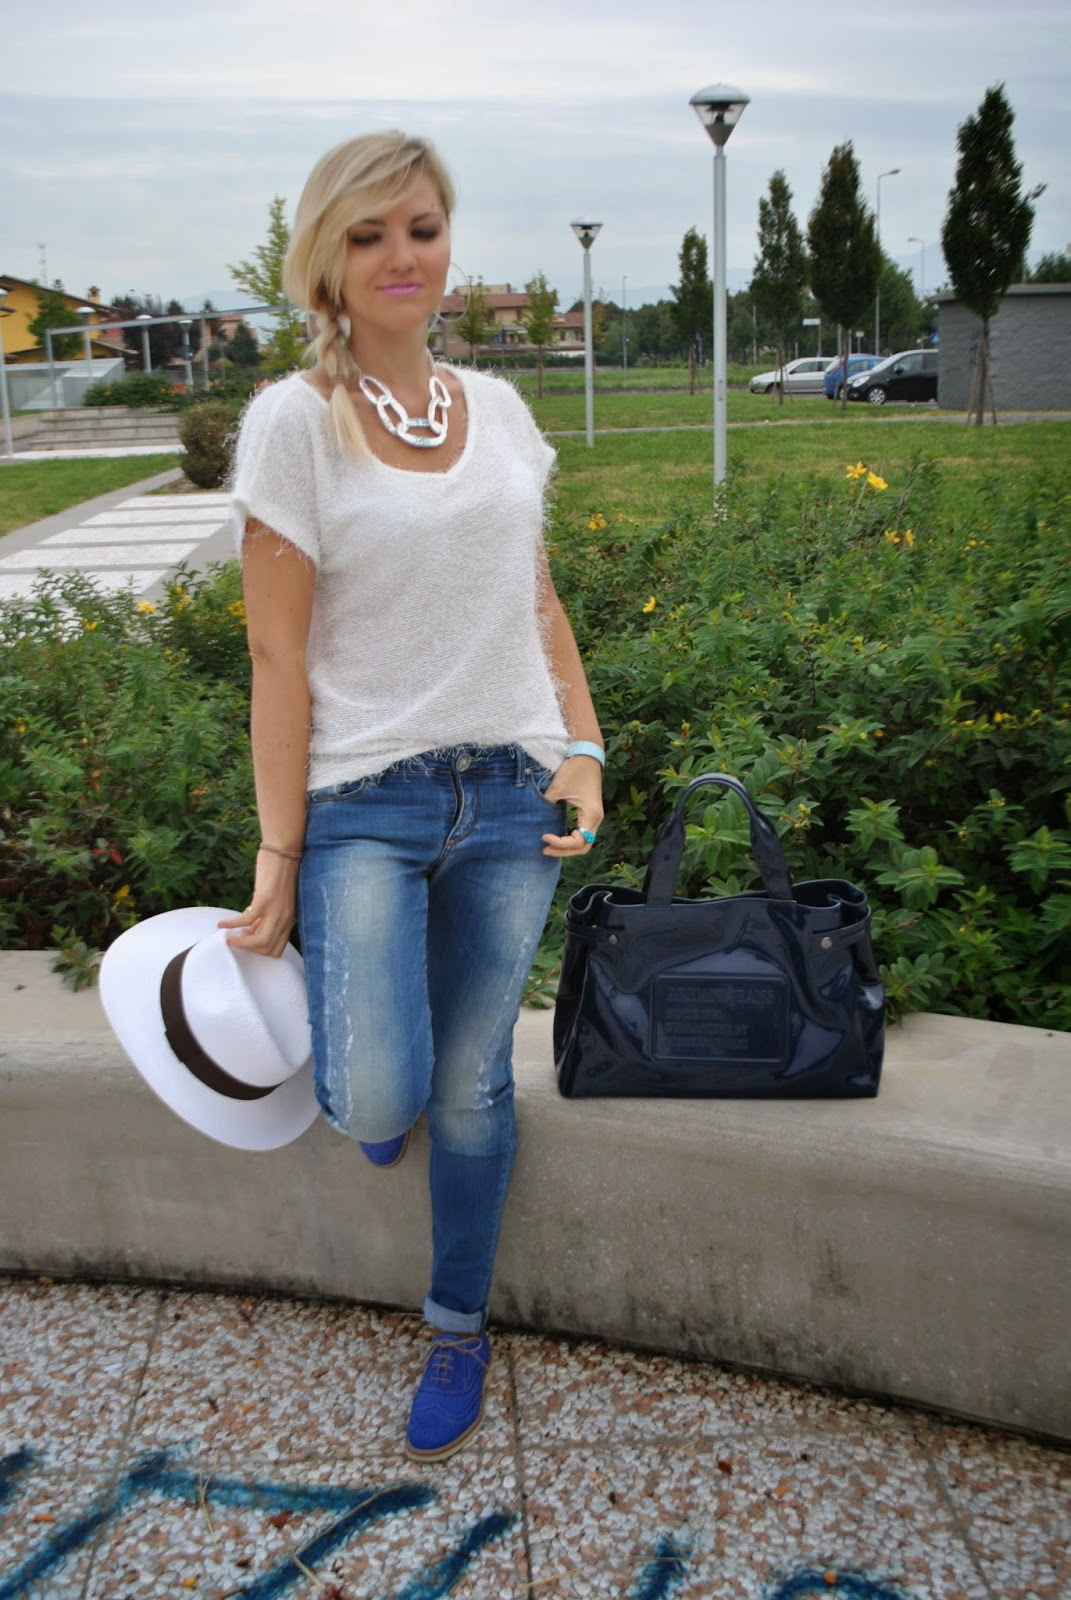 outfit casual jeans e t-shirt outfit borsalino cappello panama maglia bianca bracciale il centimetro collana majique majique gioielli fashion blogger italiane fashion blogger bionde mariafelicia magno fashion blogger colorblock by felym outfit settembre 2014 outfit estate 2014 outfit estivi